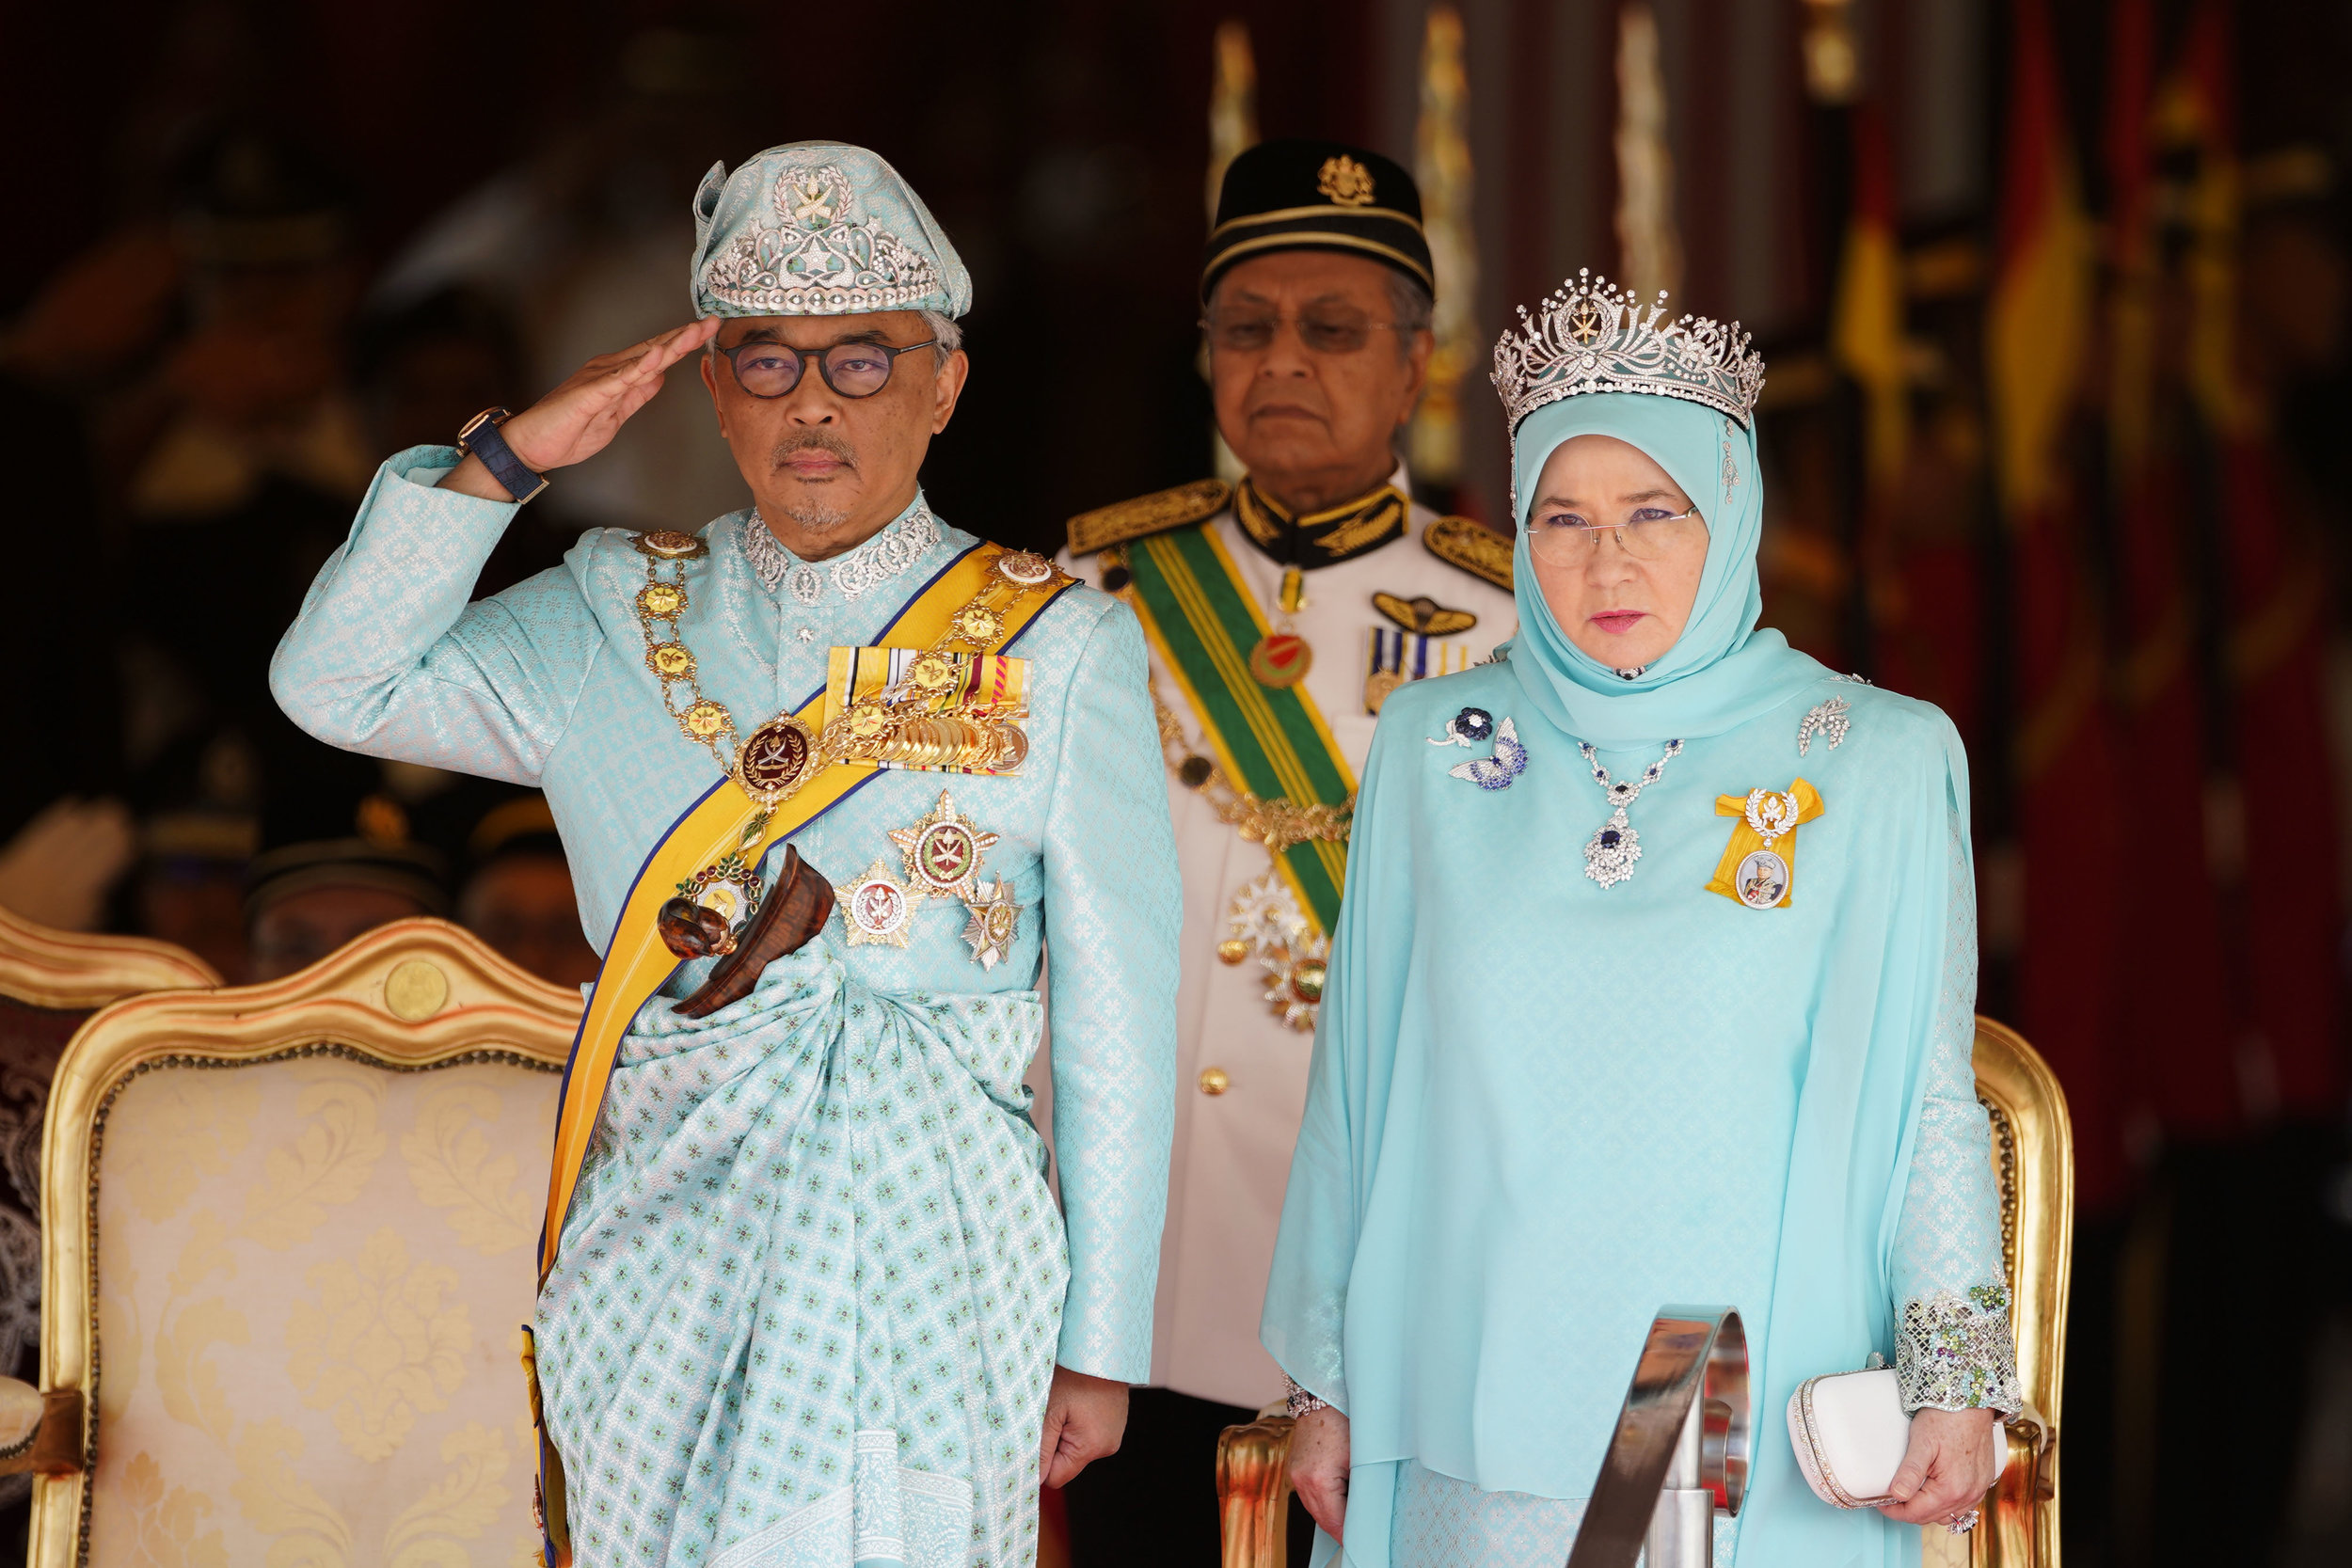 Malaysia's King Sultan Abdullah Sultan Ahmad Shah salutes next to Queen Tunku Azizah Aminah Maimunah and Prime Minister Mahathir Mohamad, center, during his welcome ceremony at Parliament House in Kuala Lumpur, Malaysia, Thursday, Jan. 31, 2019. (AP Photo/Yam G-Jun)